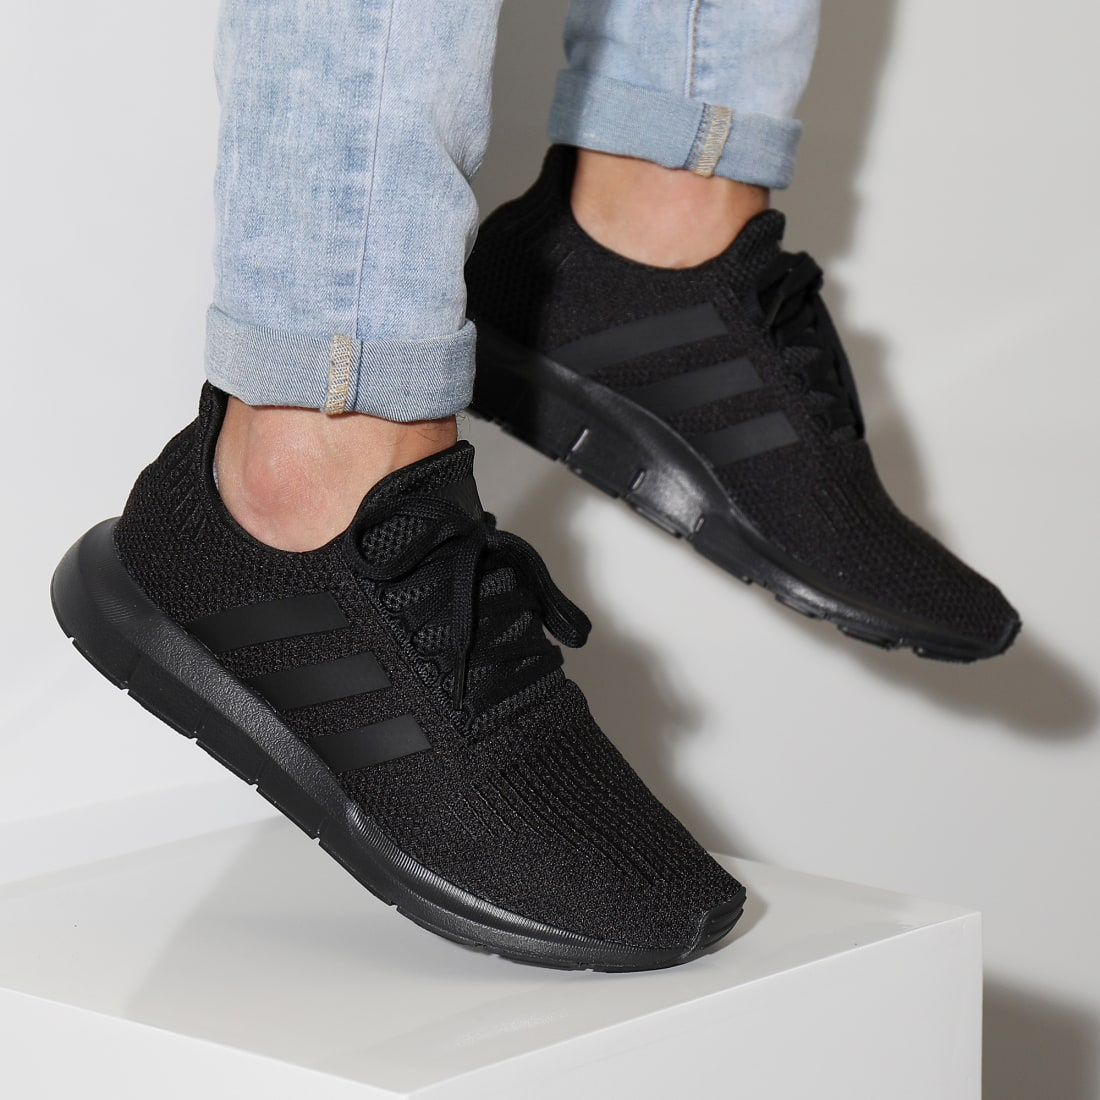 adidas Baskets Swift Run AQ0863 Core Black Footwear White